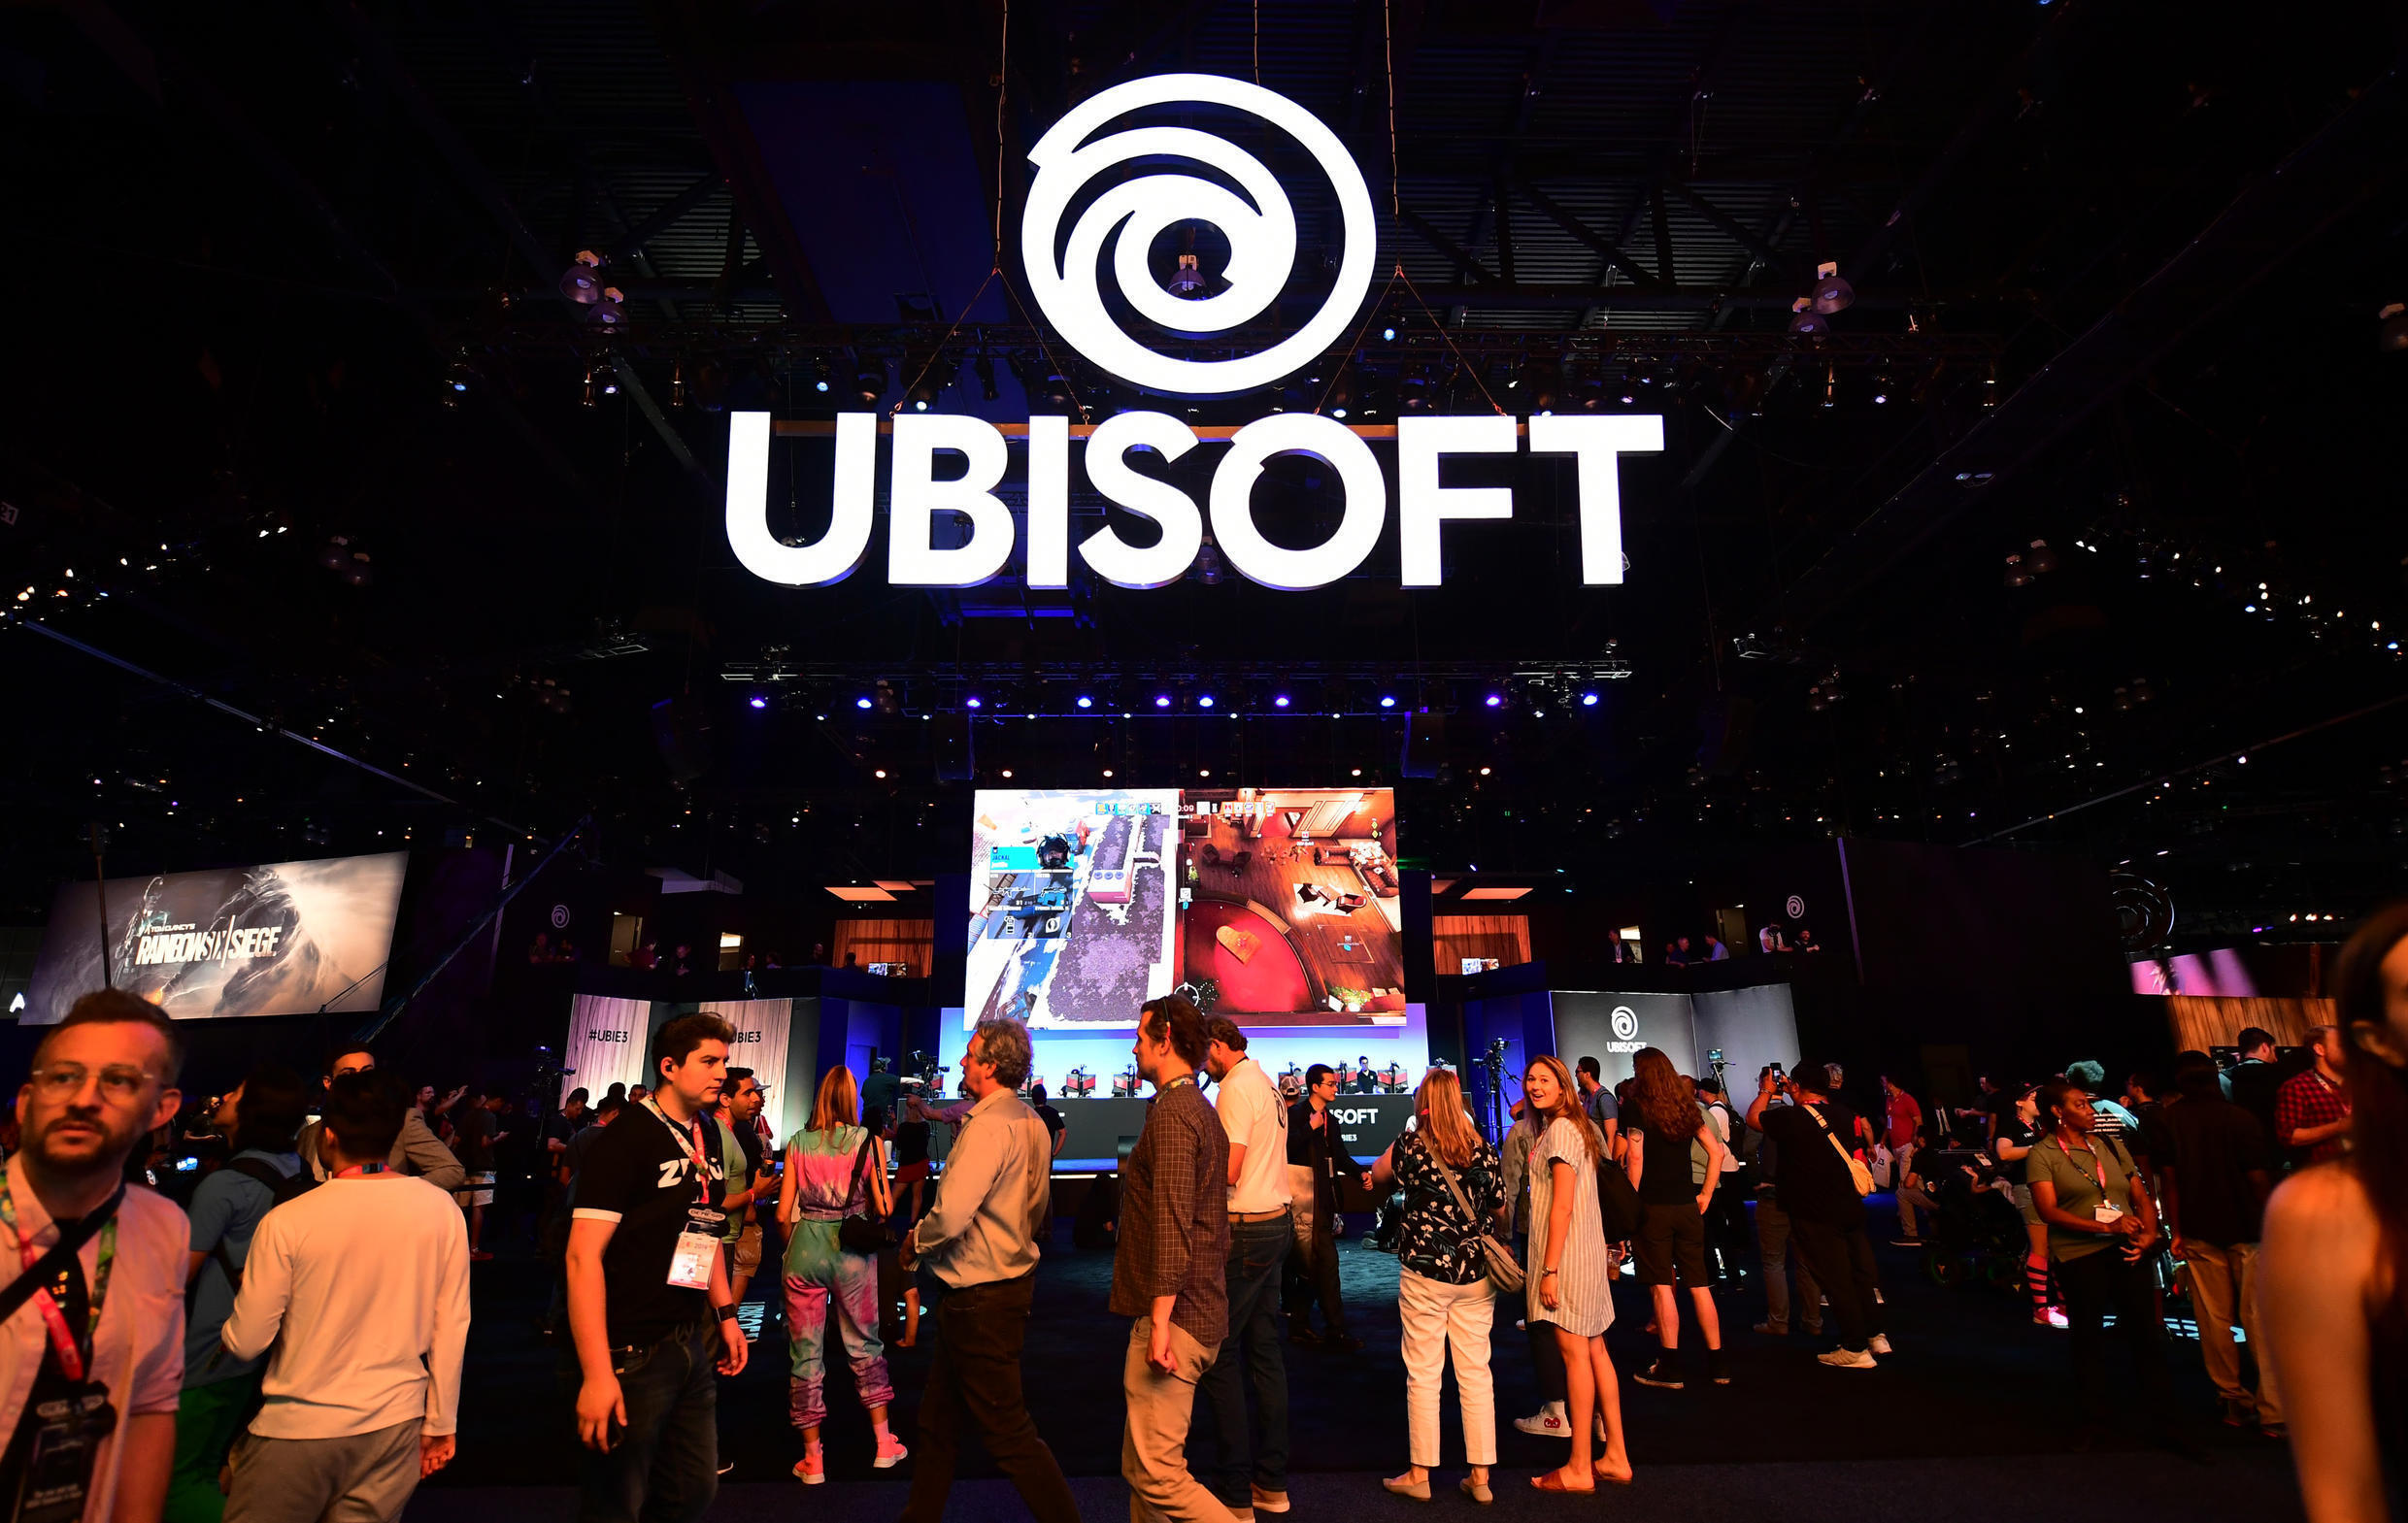 Ubisoft is one of the world's largest video game publishers with a portfolio including Assassin's Creed and Far Cry